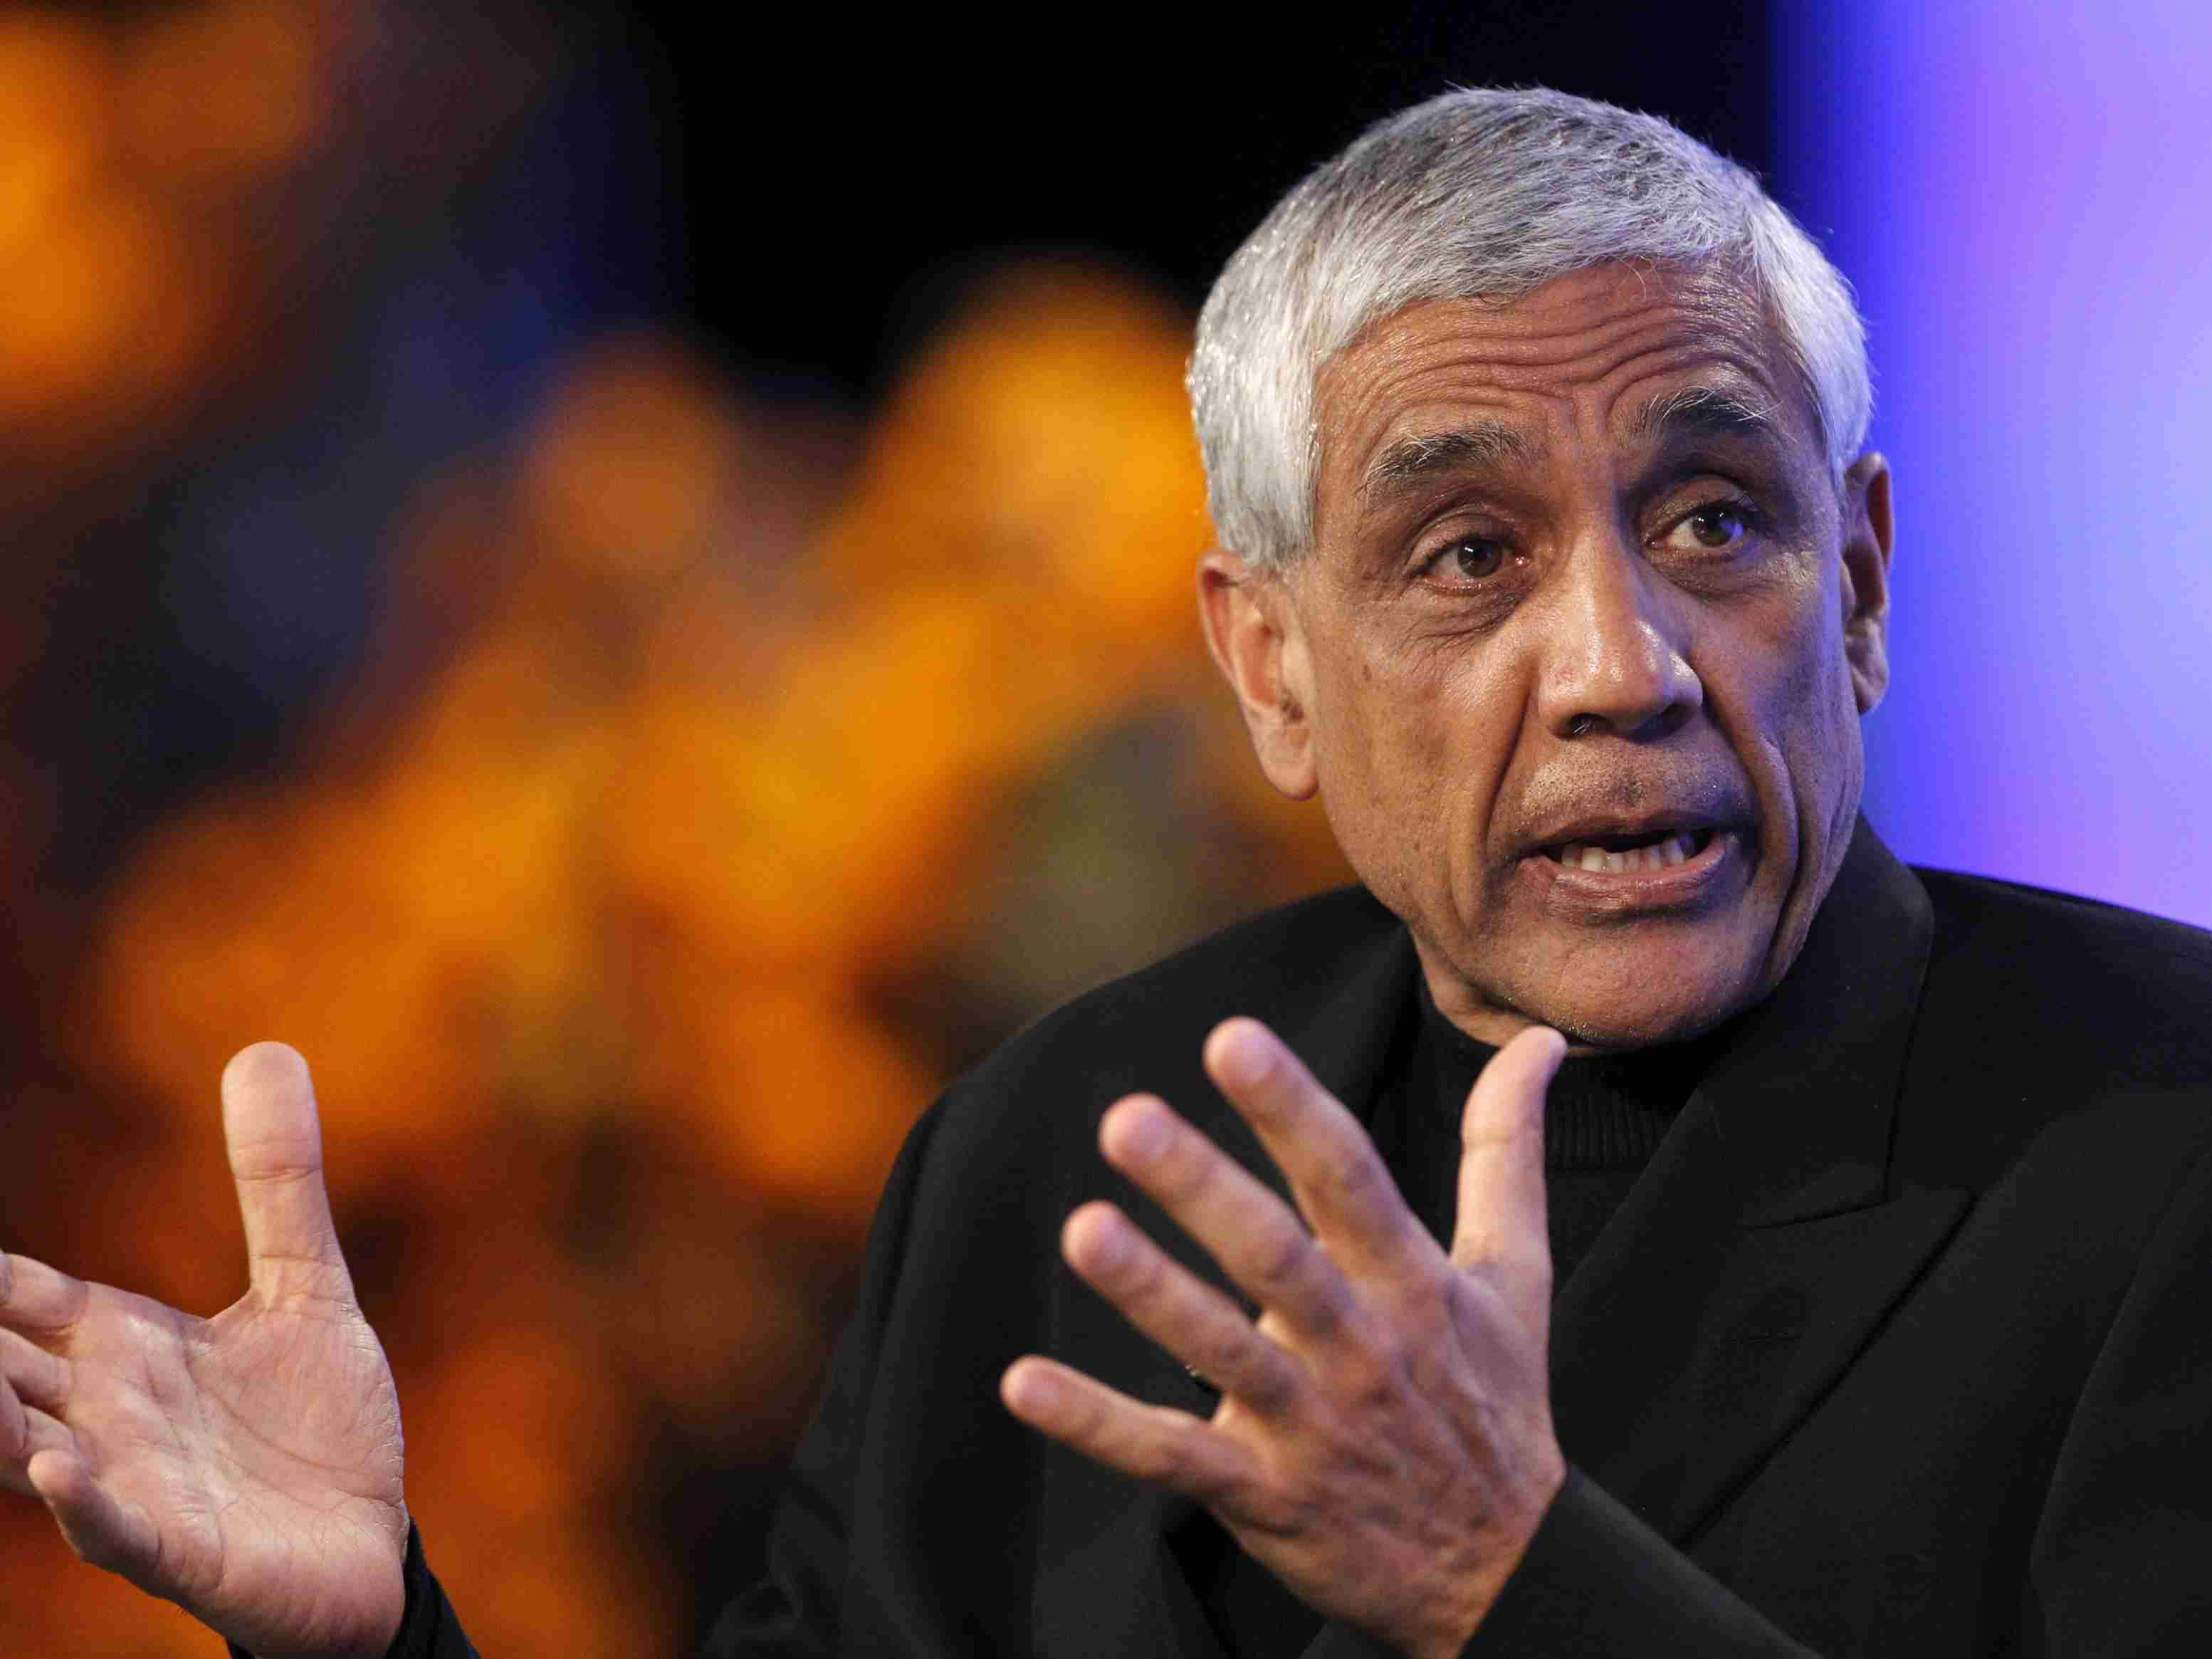 Vinod Khosla: Billionaire Investor Says IBM, Dell Have Not Had 'One New Idea' in Past 30 Years